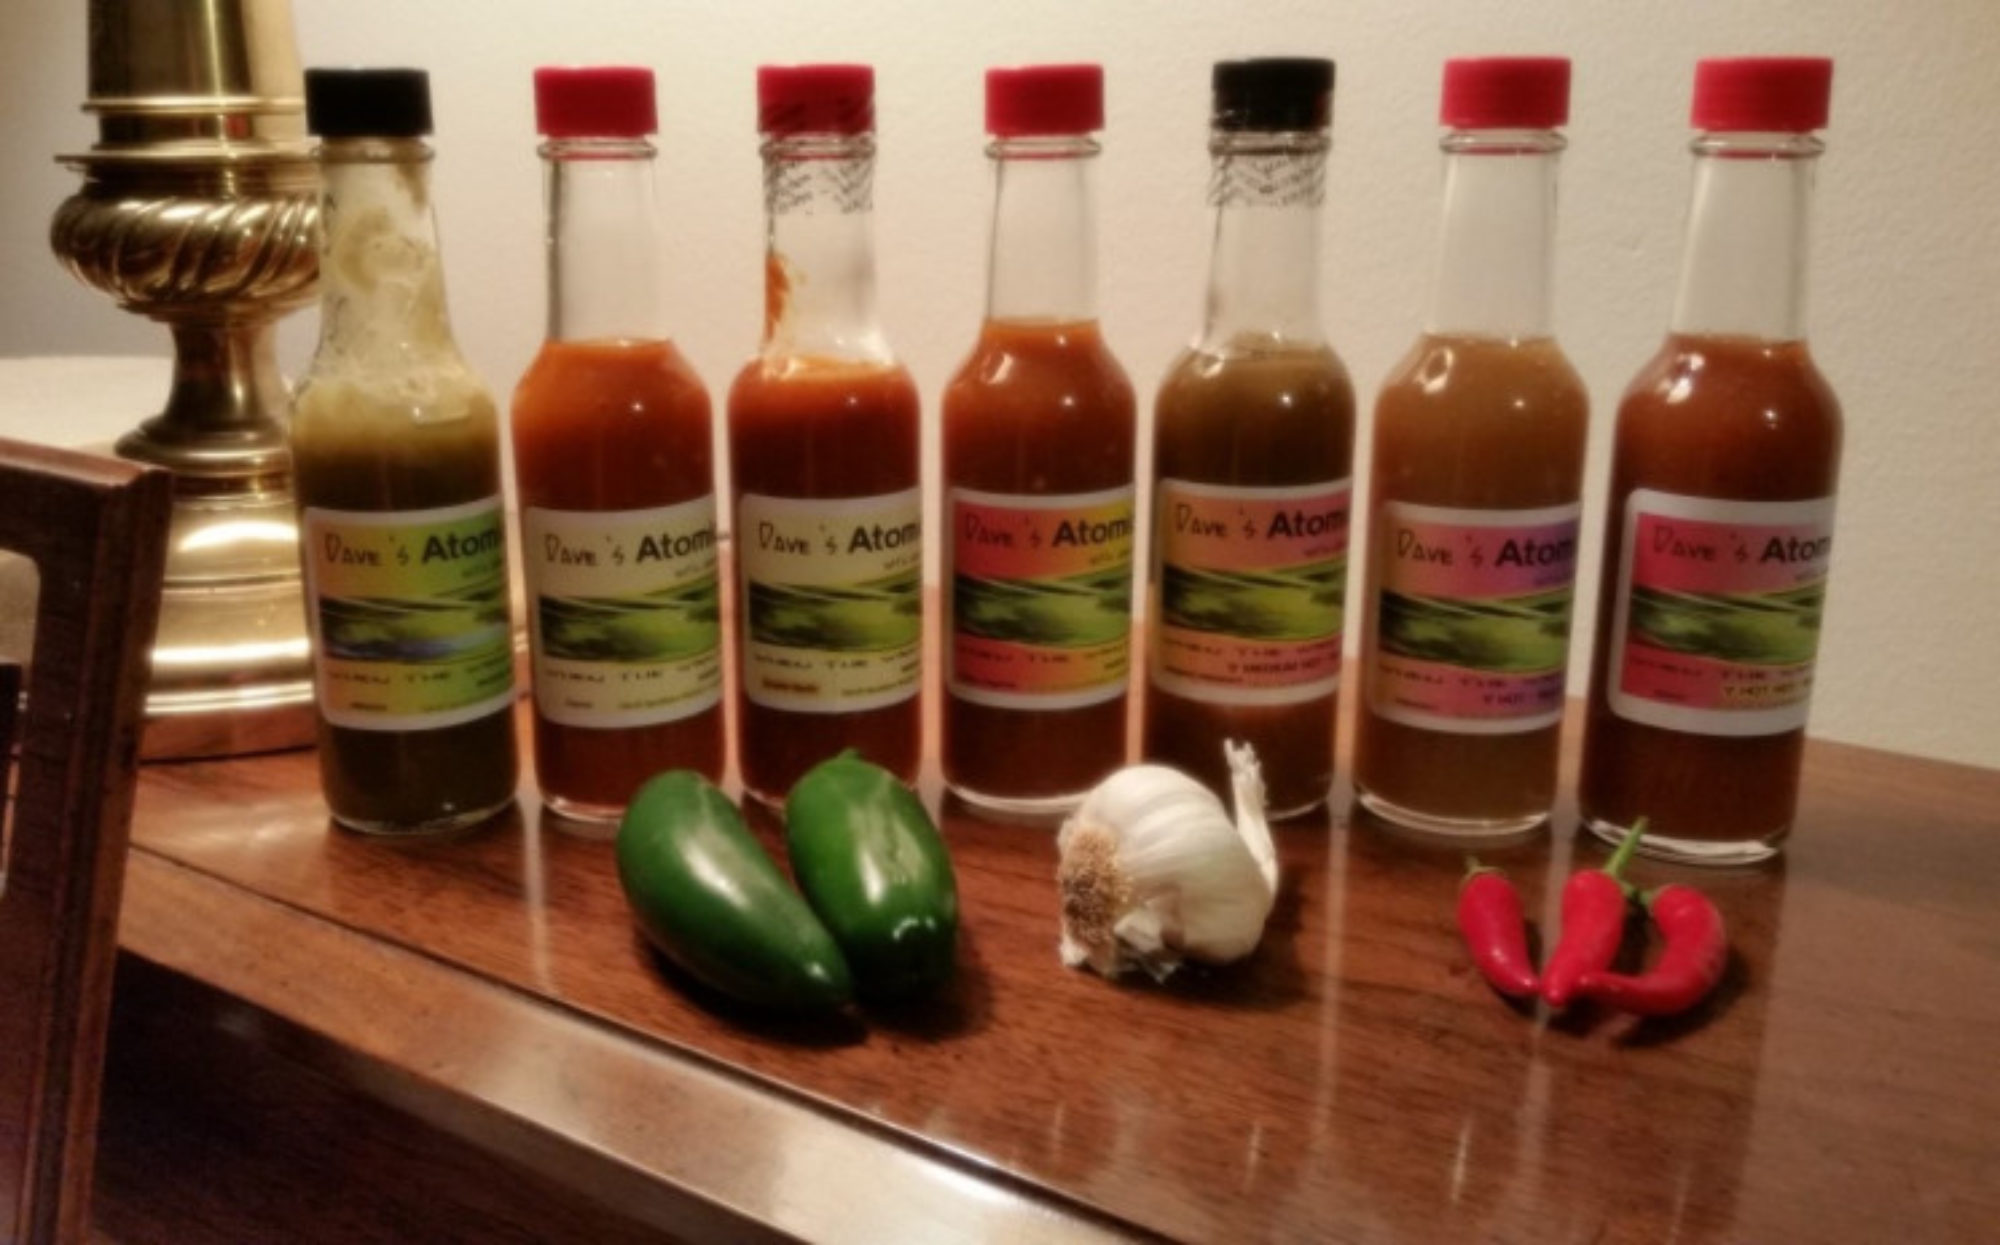 Dave's Atomic Hot Sauce with Garlic